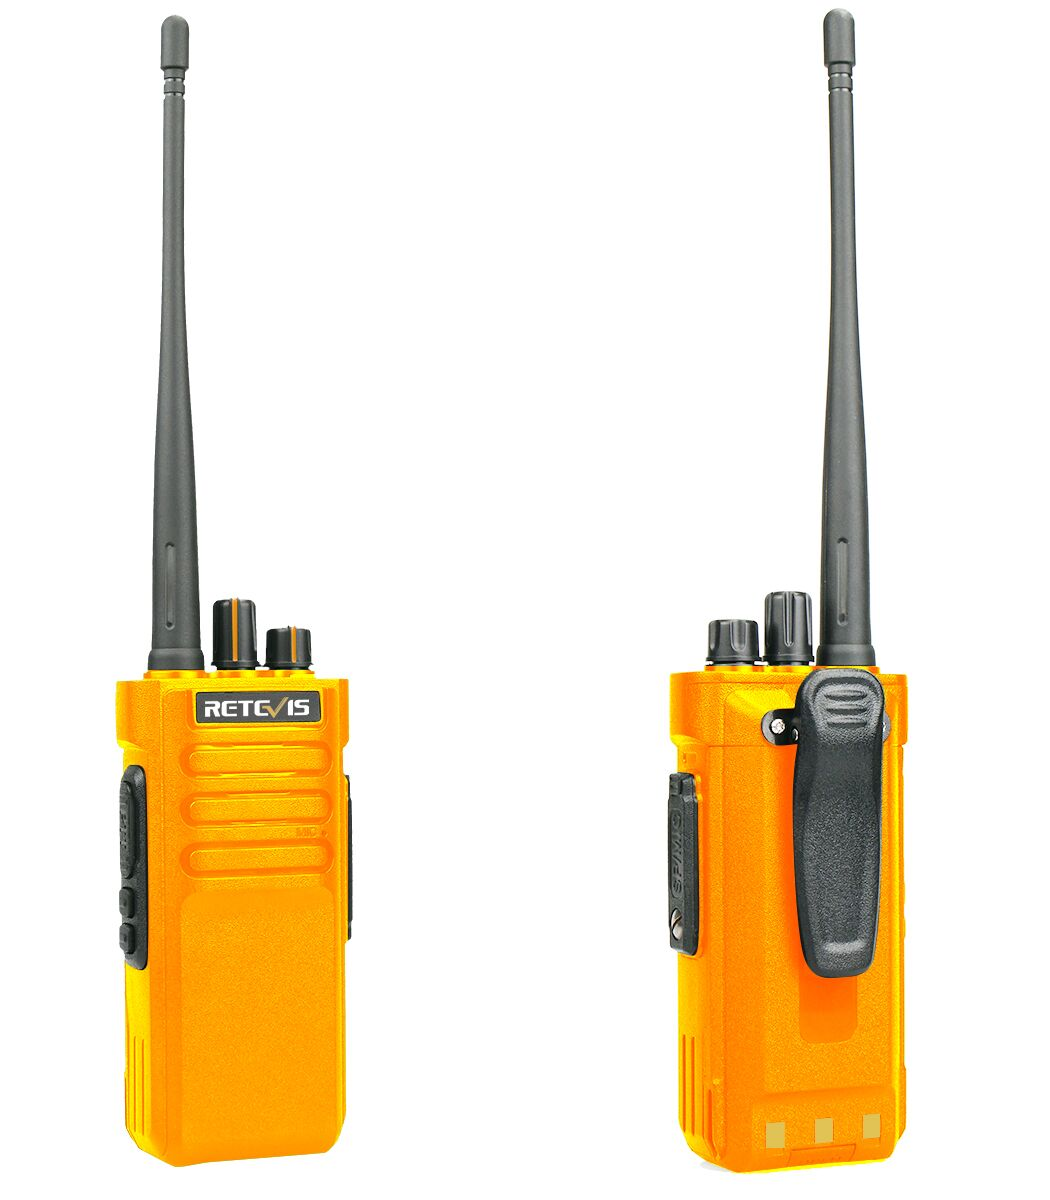 Retevis RT29 orange long-range radio is selling now.